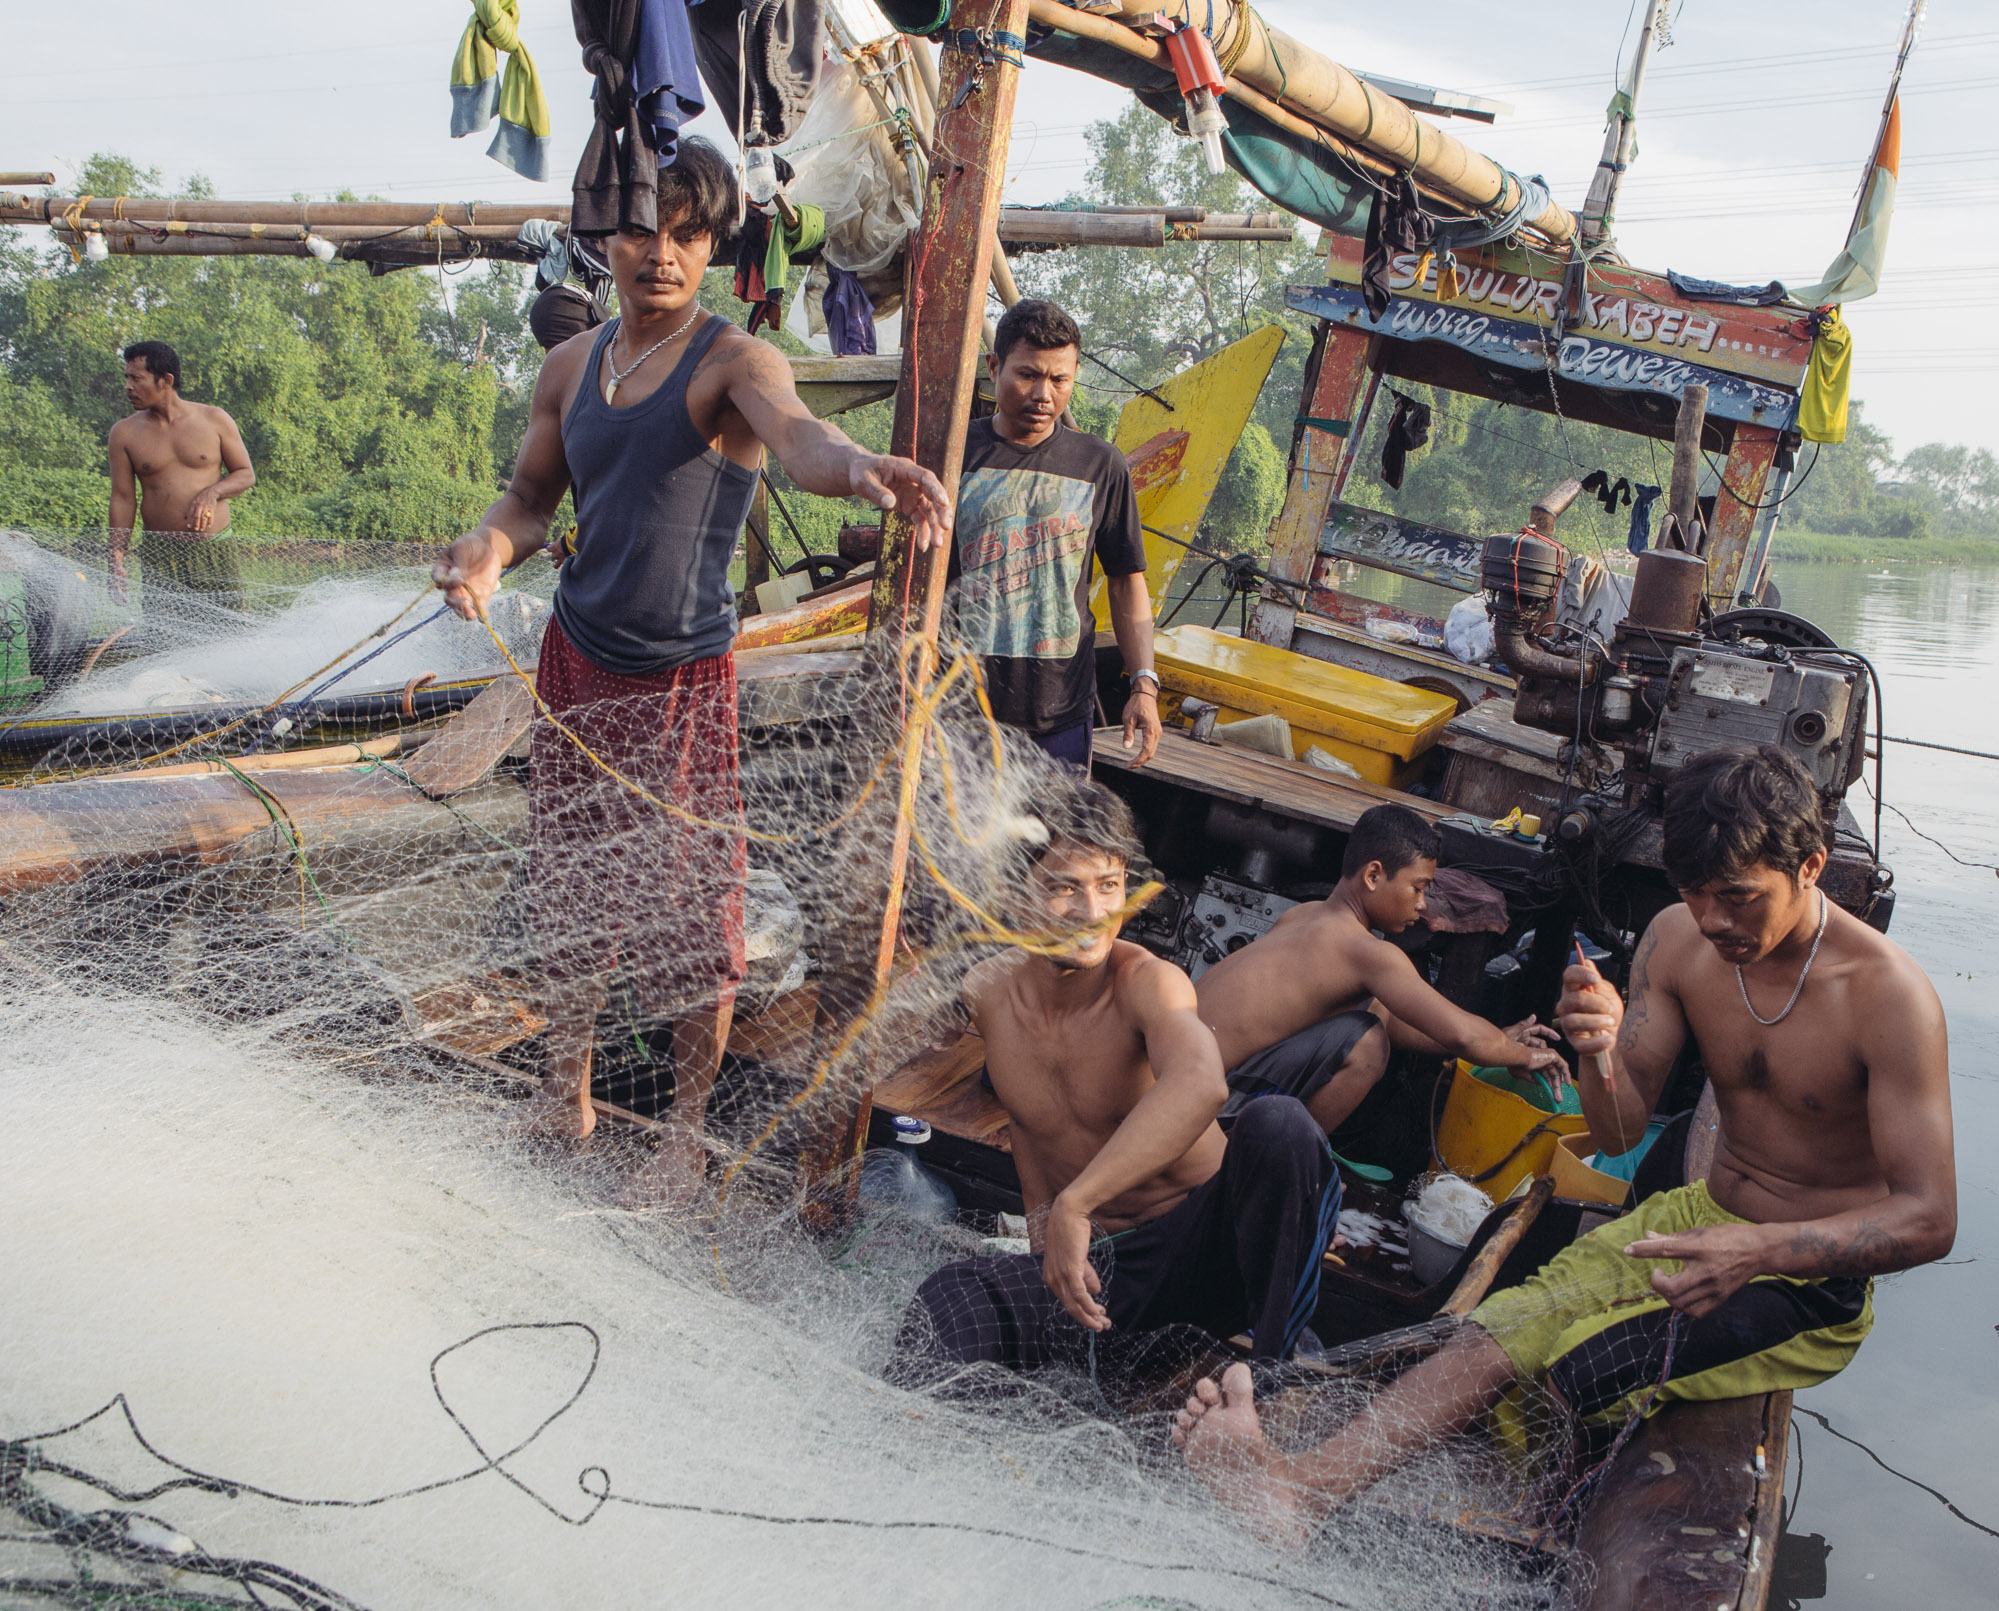 Fishermen work in Muara Angke, North Jakarta. Most of Muara Angke's residents are fishermen who depend on the catches from Jakarta Bay for survival. (Photo by Muhammad Fadli/GroundTruth)